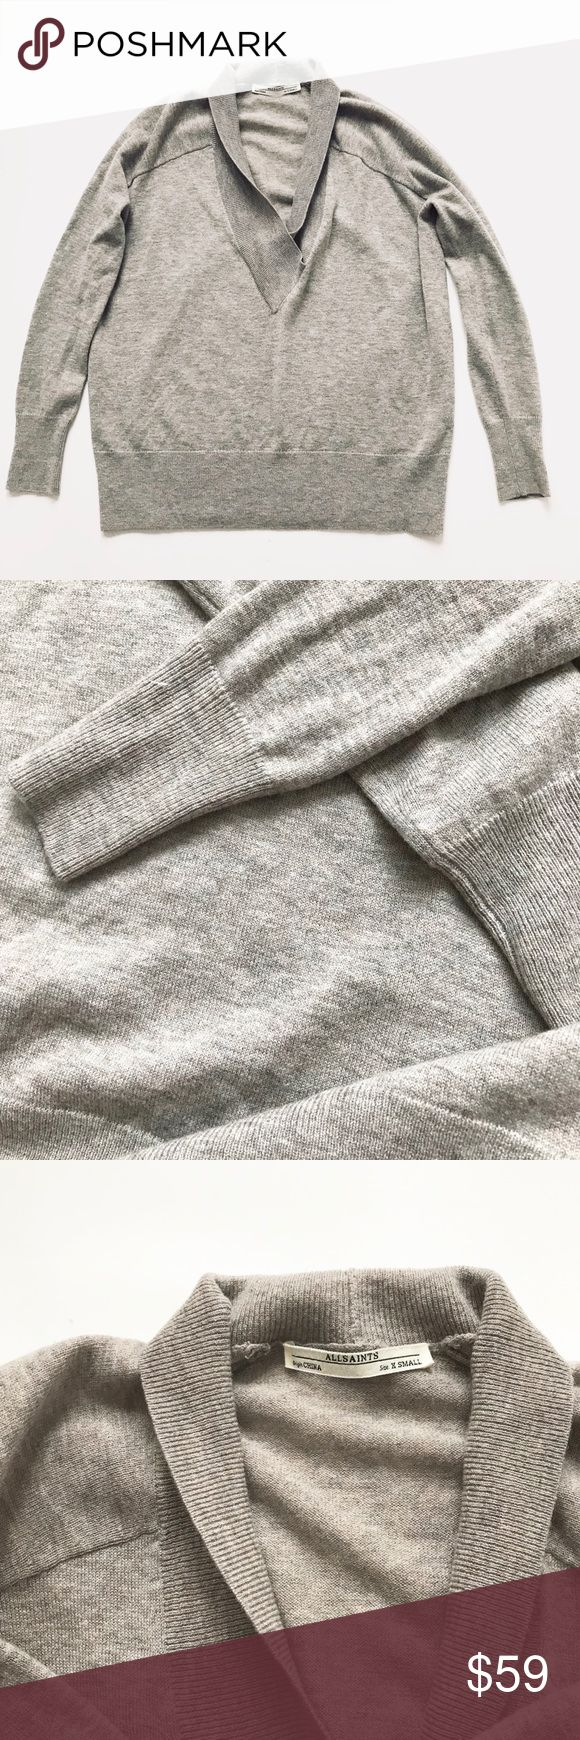 Euc All Saints wool sweater women Sz Xs Very soft and comfortable sweater from All Saints. It's in excellent used condition. All sales are final. All Saints Sweaters V-Necks